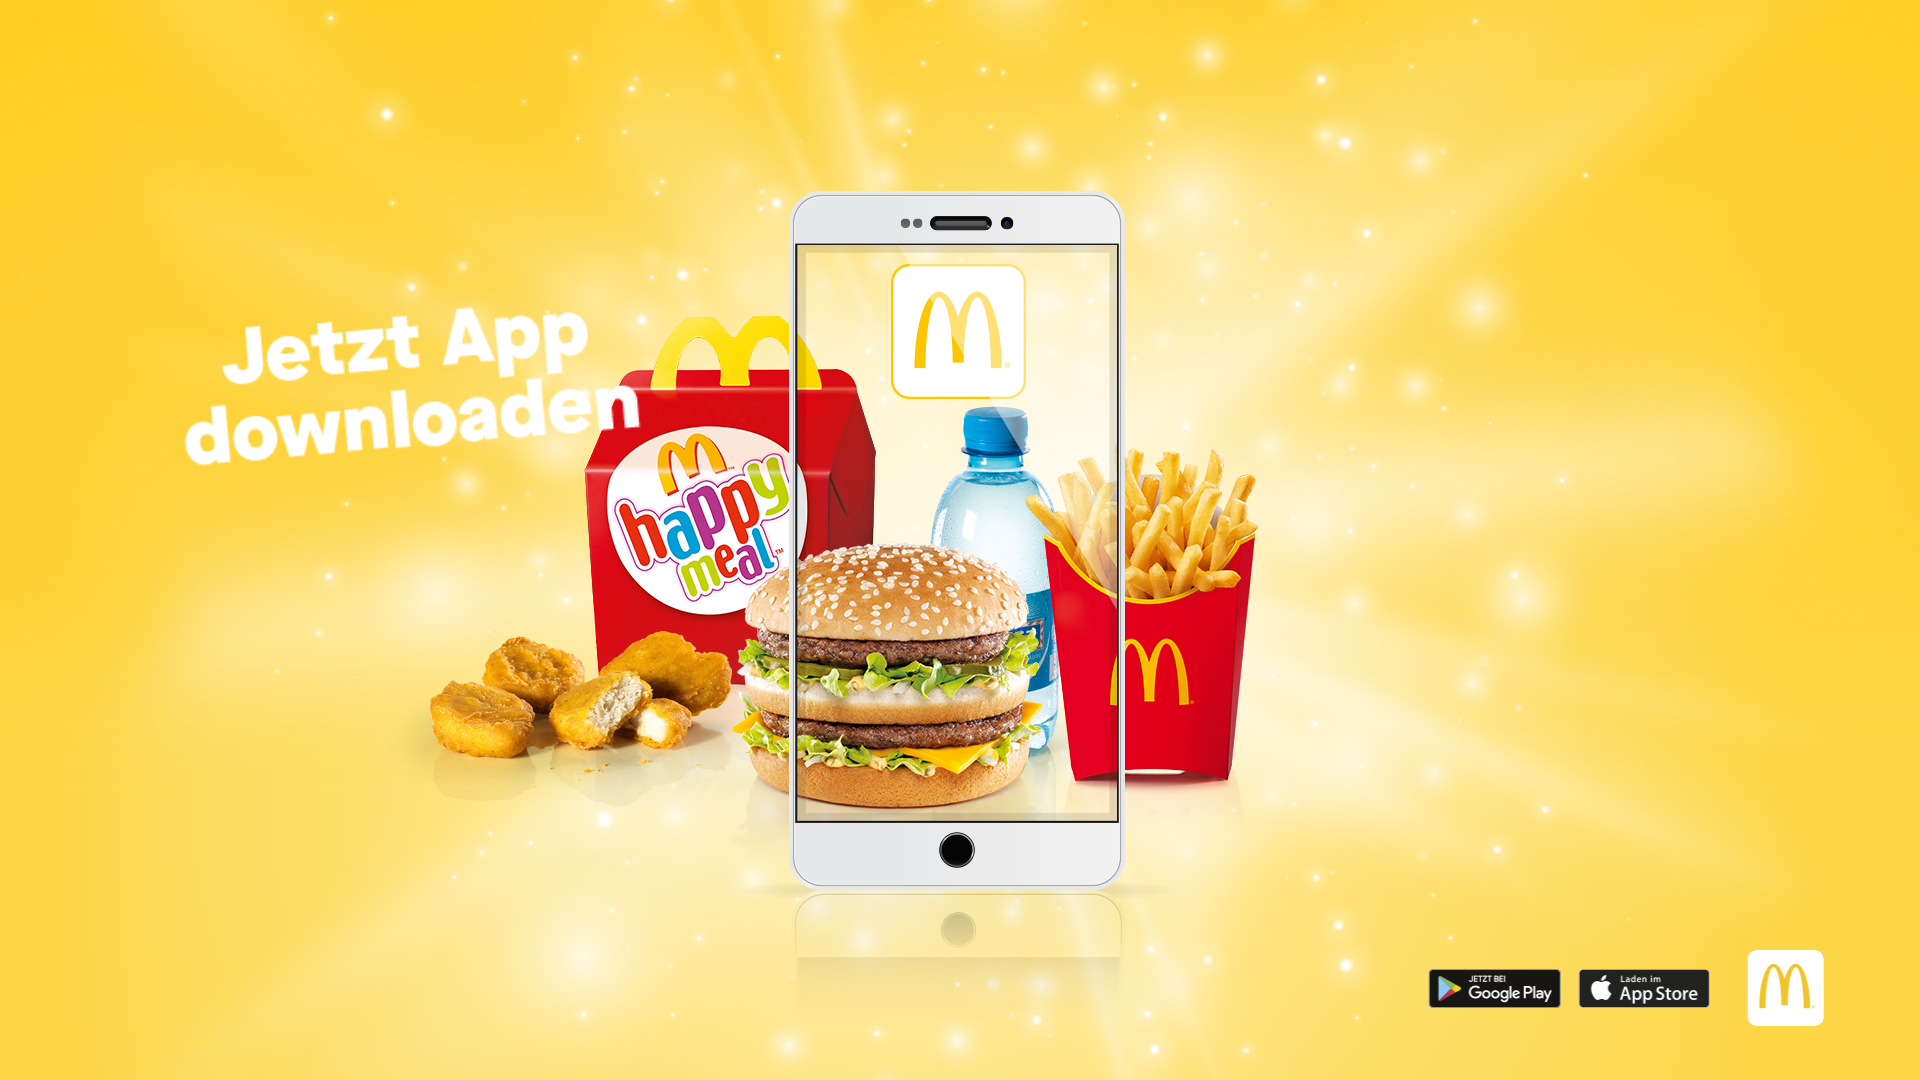 A 3D Still Image of a McDonald's Happy Meal, a BigMac and Fries, seen on a Mobile Phone